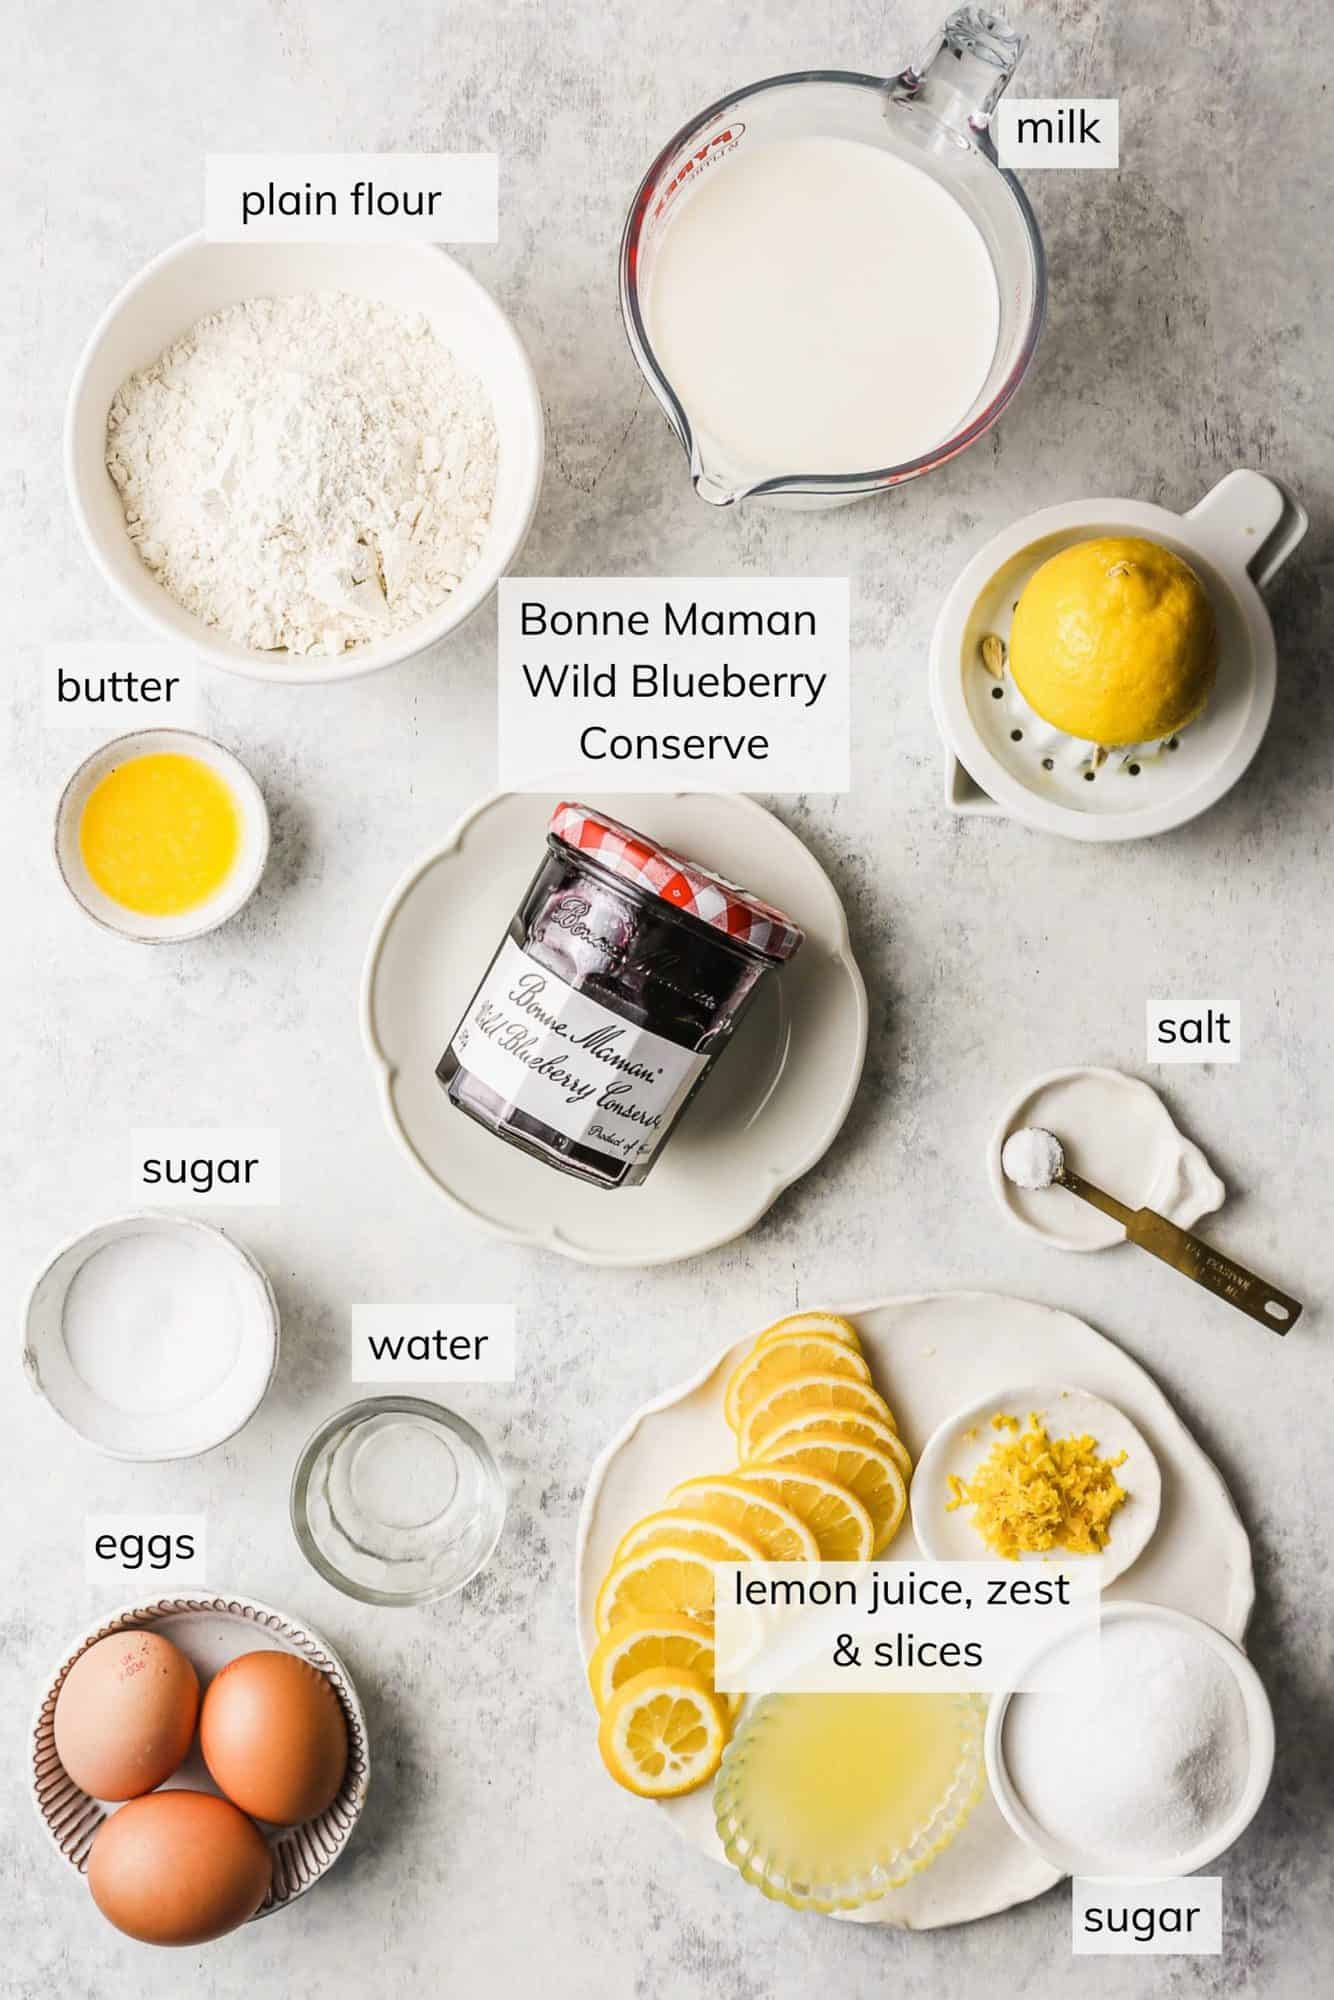 Ingredients required to make French Lemon Crepes